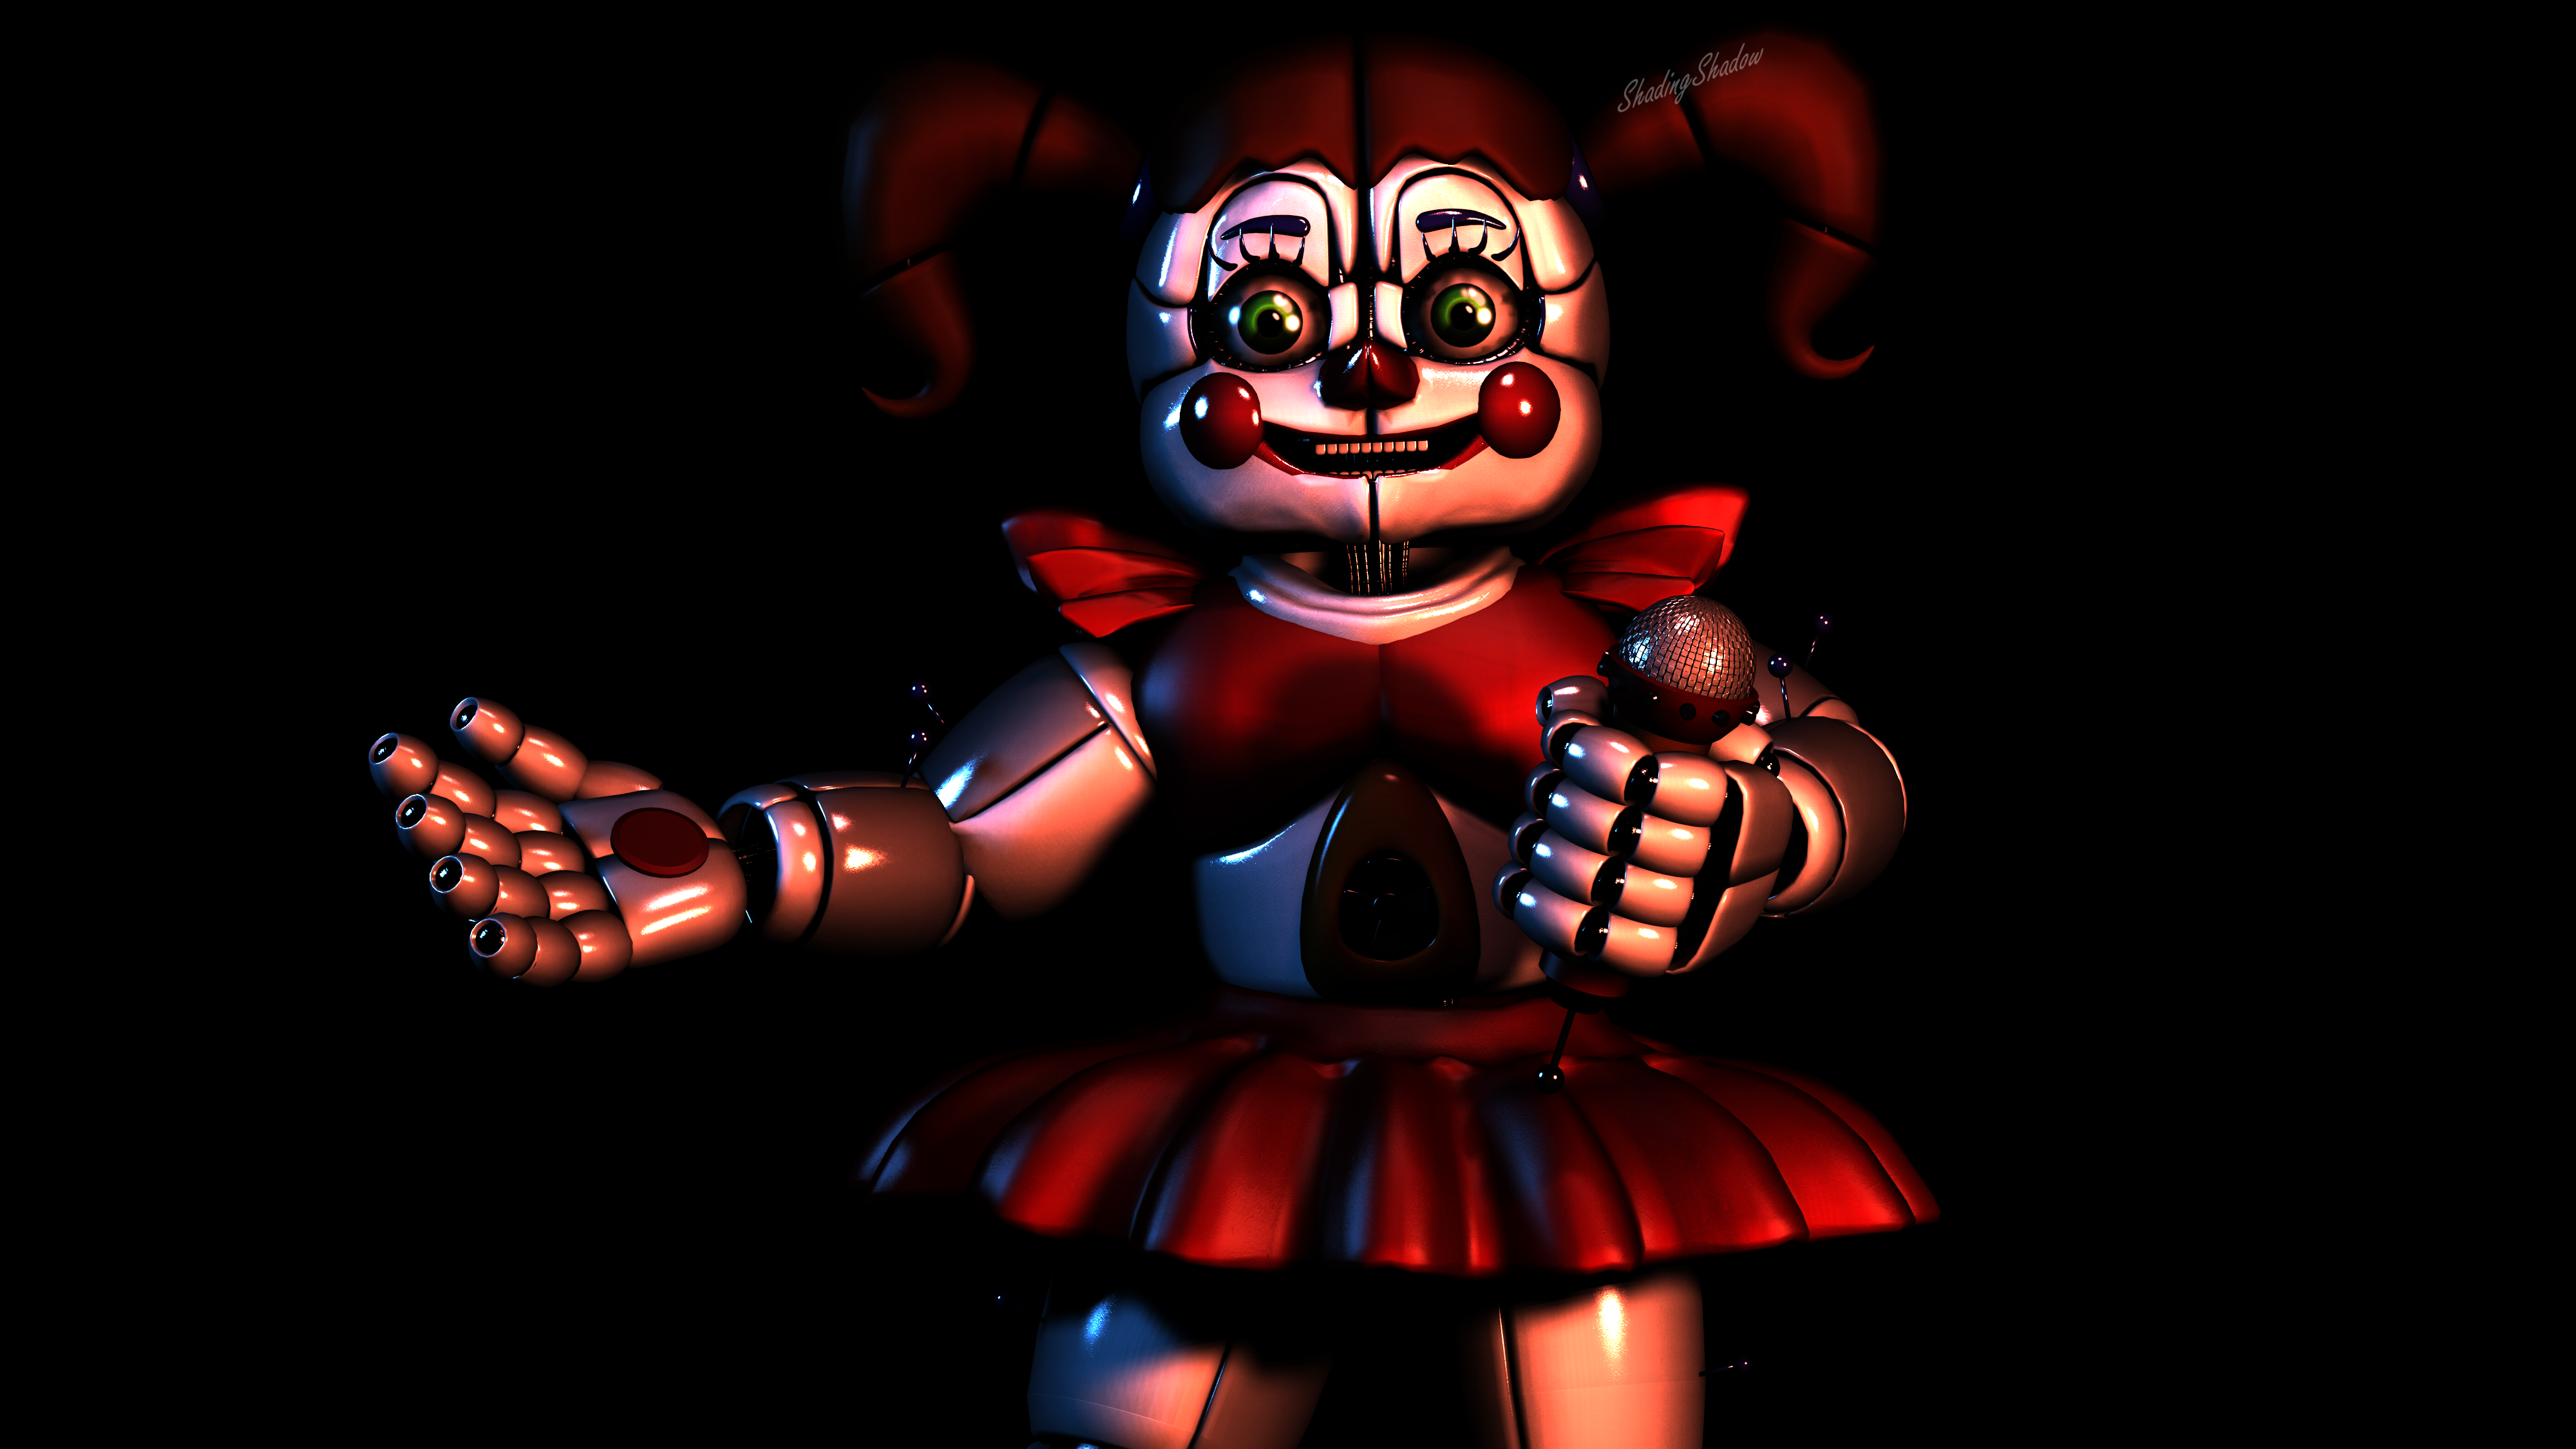 Circus Baby (SFM FNAF) by TheSitciXD on DeviantArt